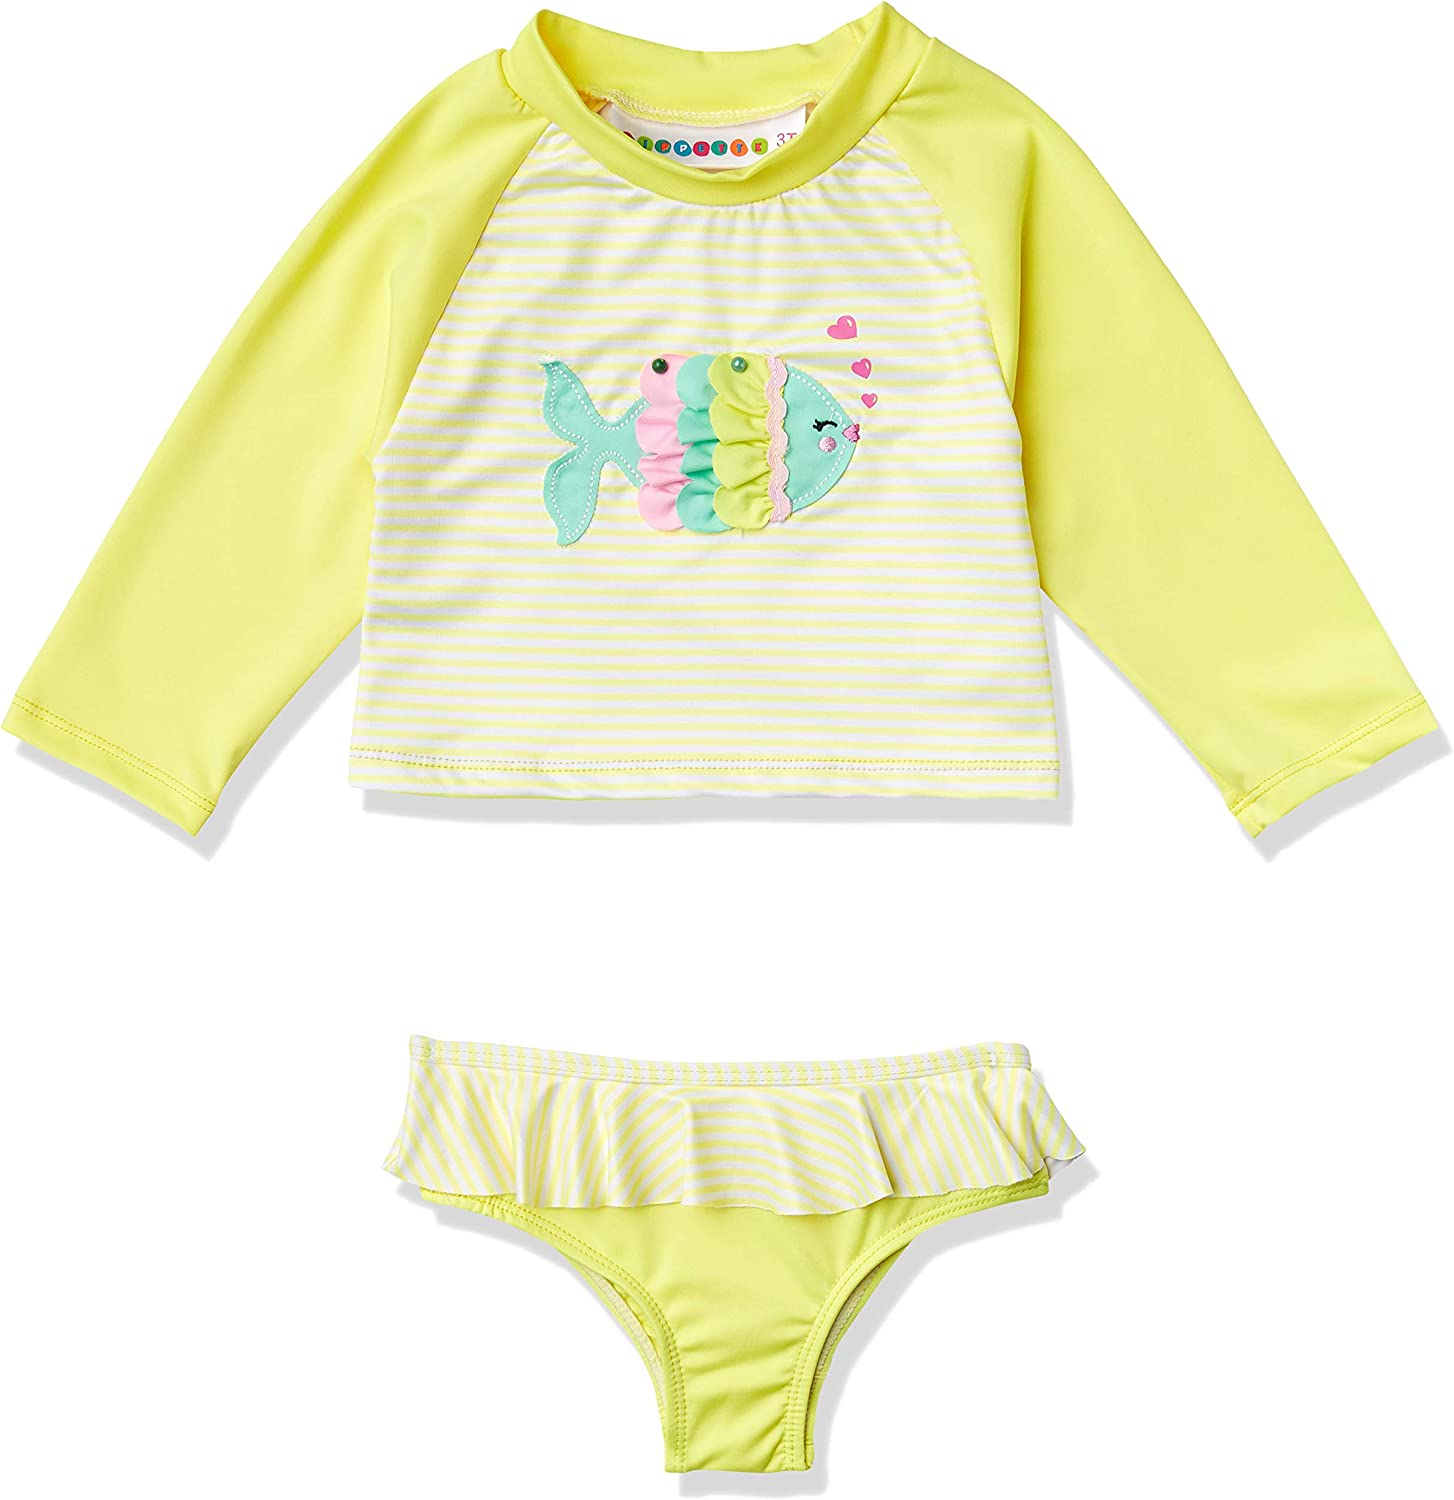 Wippette Girls Toddler Baby Two Piece Rashguard Set with Ruffle Trim